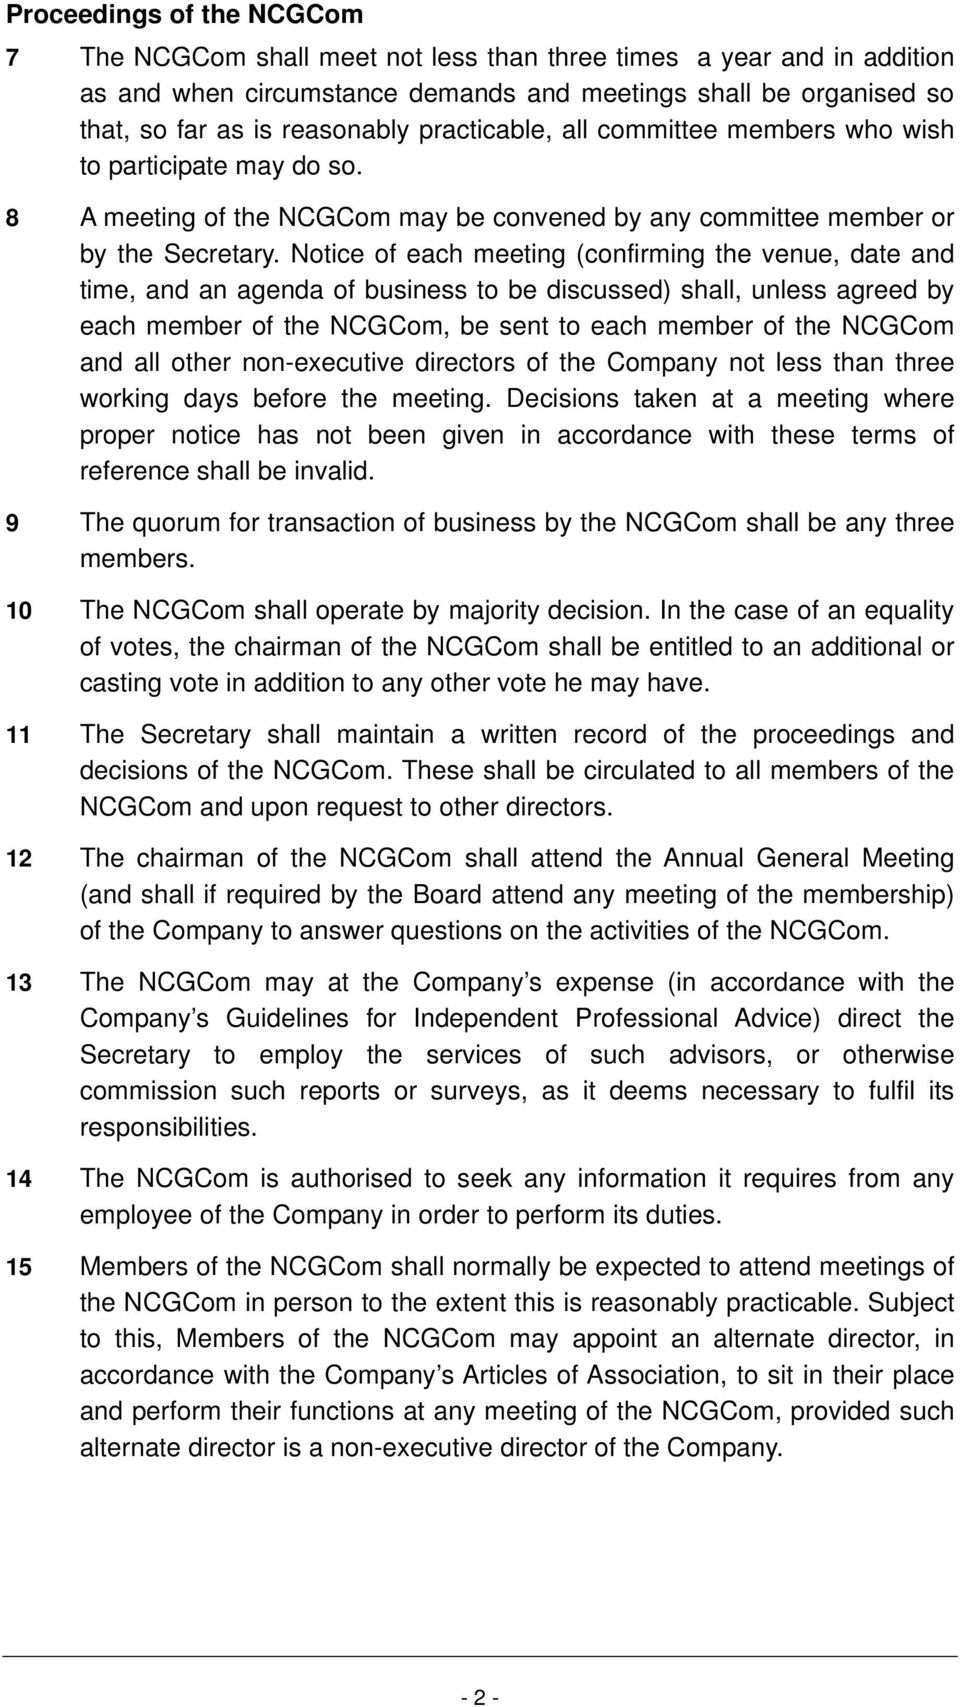 Notice of each meeting (confirming the venue, date and time, and an agenda of business to be discussed) shall, unless agreed by each member of the NCGCom, be sent to each member of the NCGCom and all